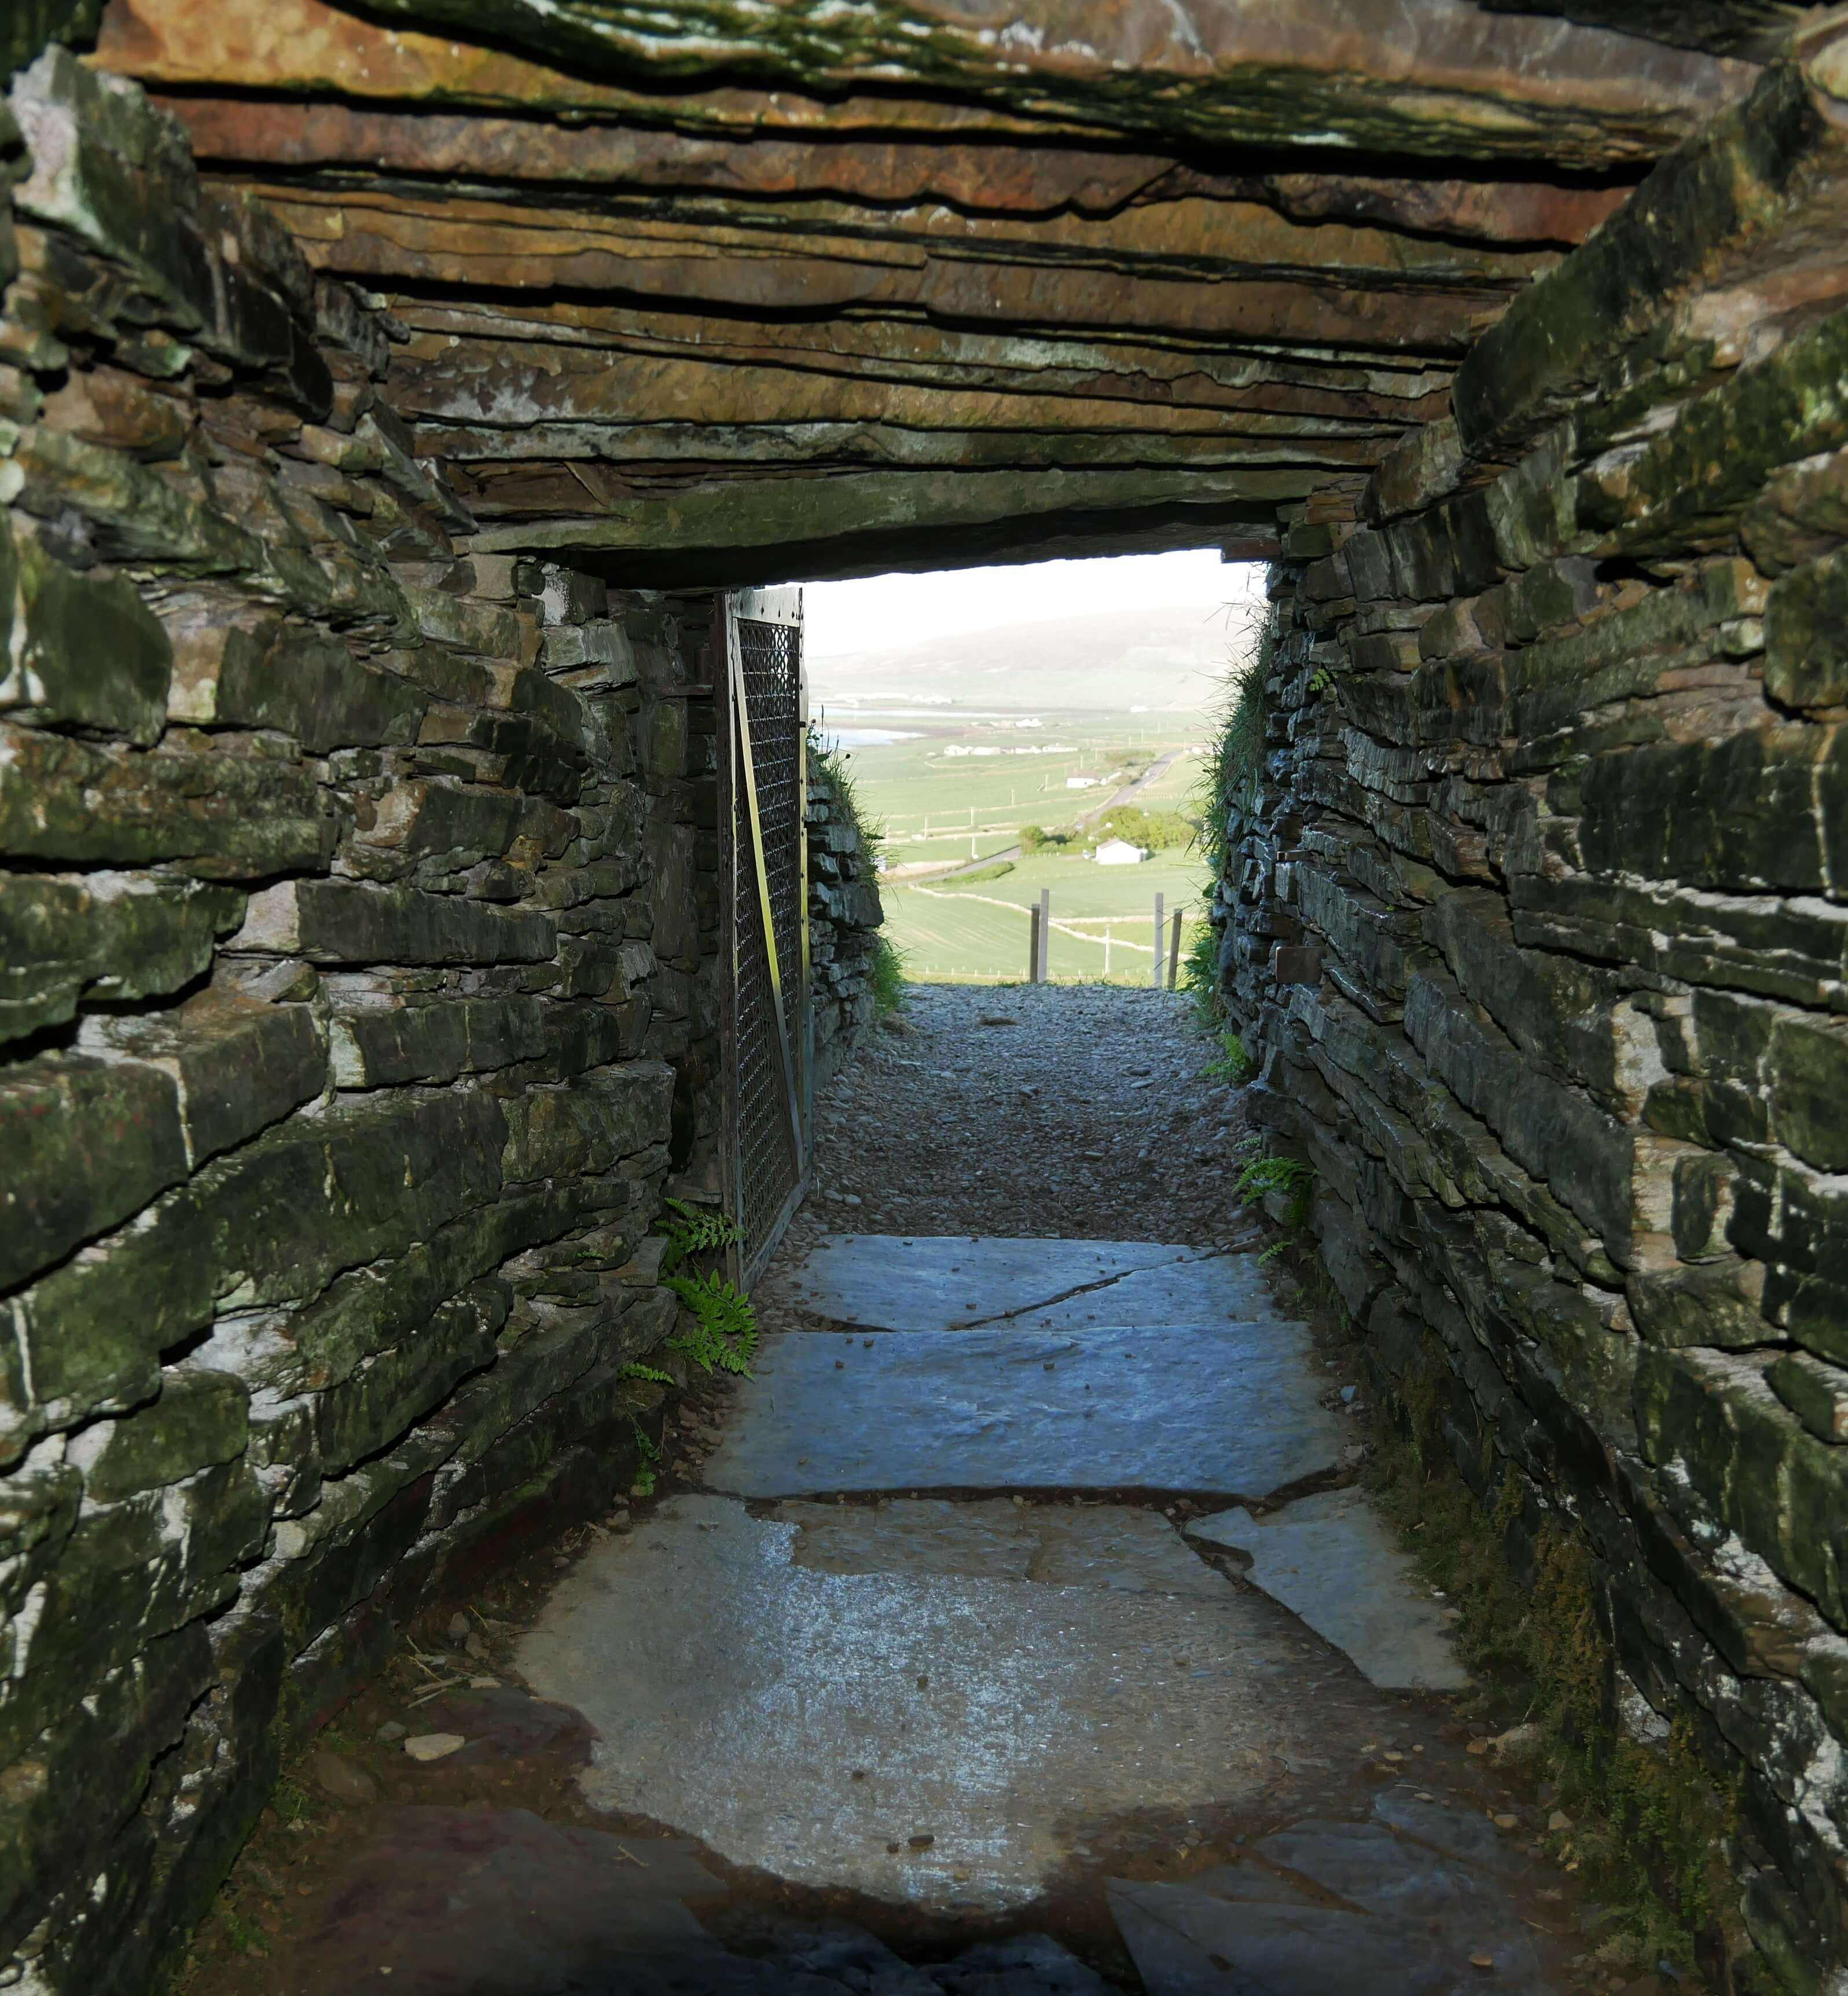 The view looking out of the passage of Cuween Chambered Cairn, Finstown, Orkney, Scotland